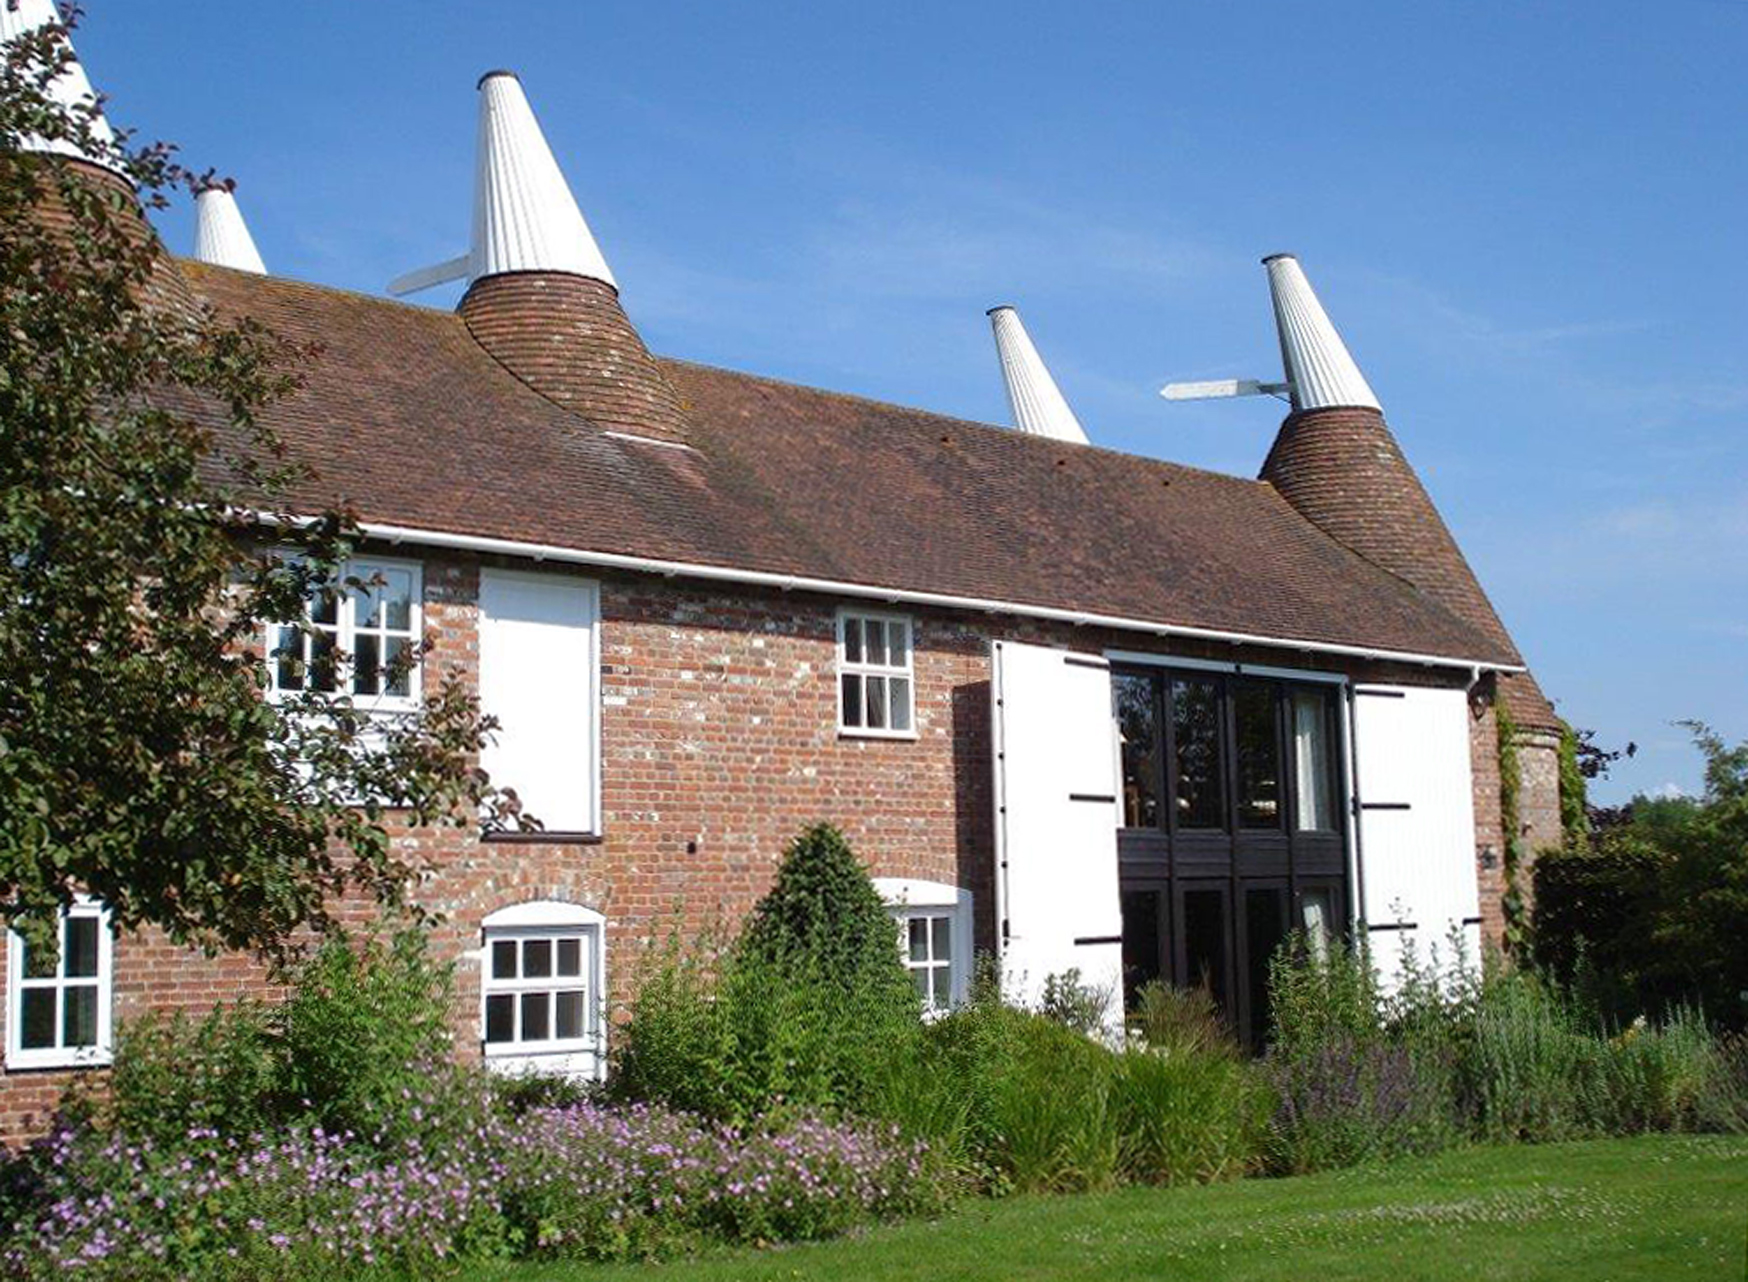 Oast's Exterior in A6 at 300dpi straightened